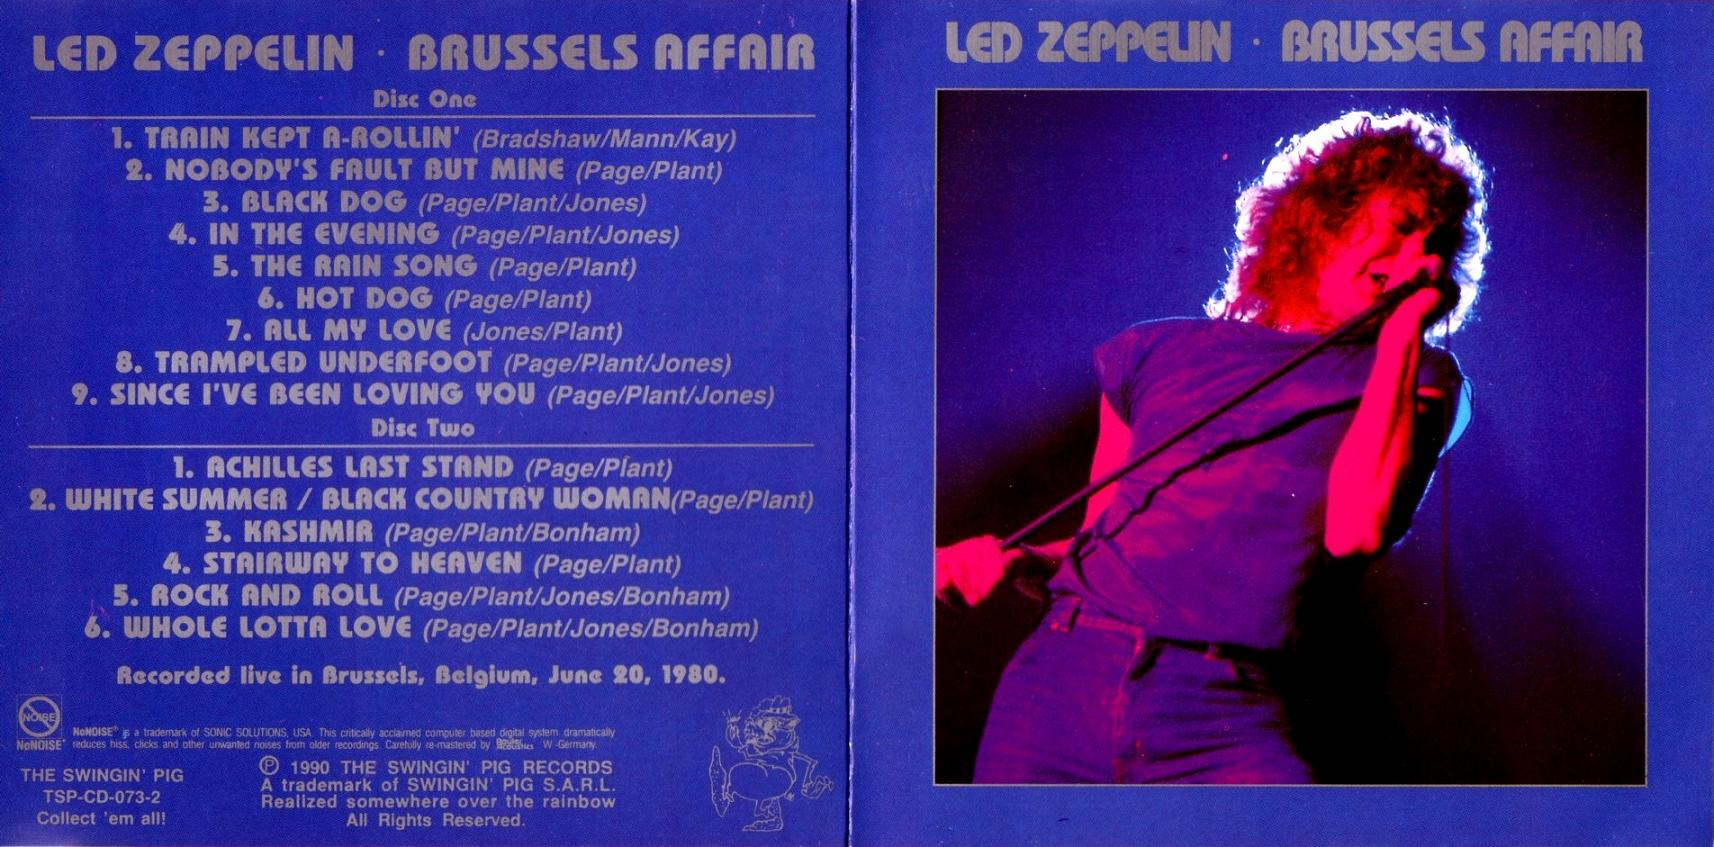 1980-06-20-Brussels_affair-front